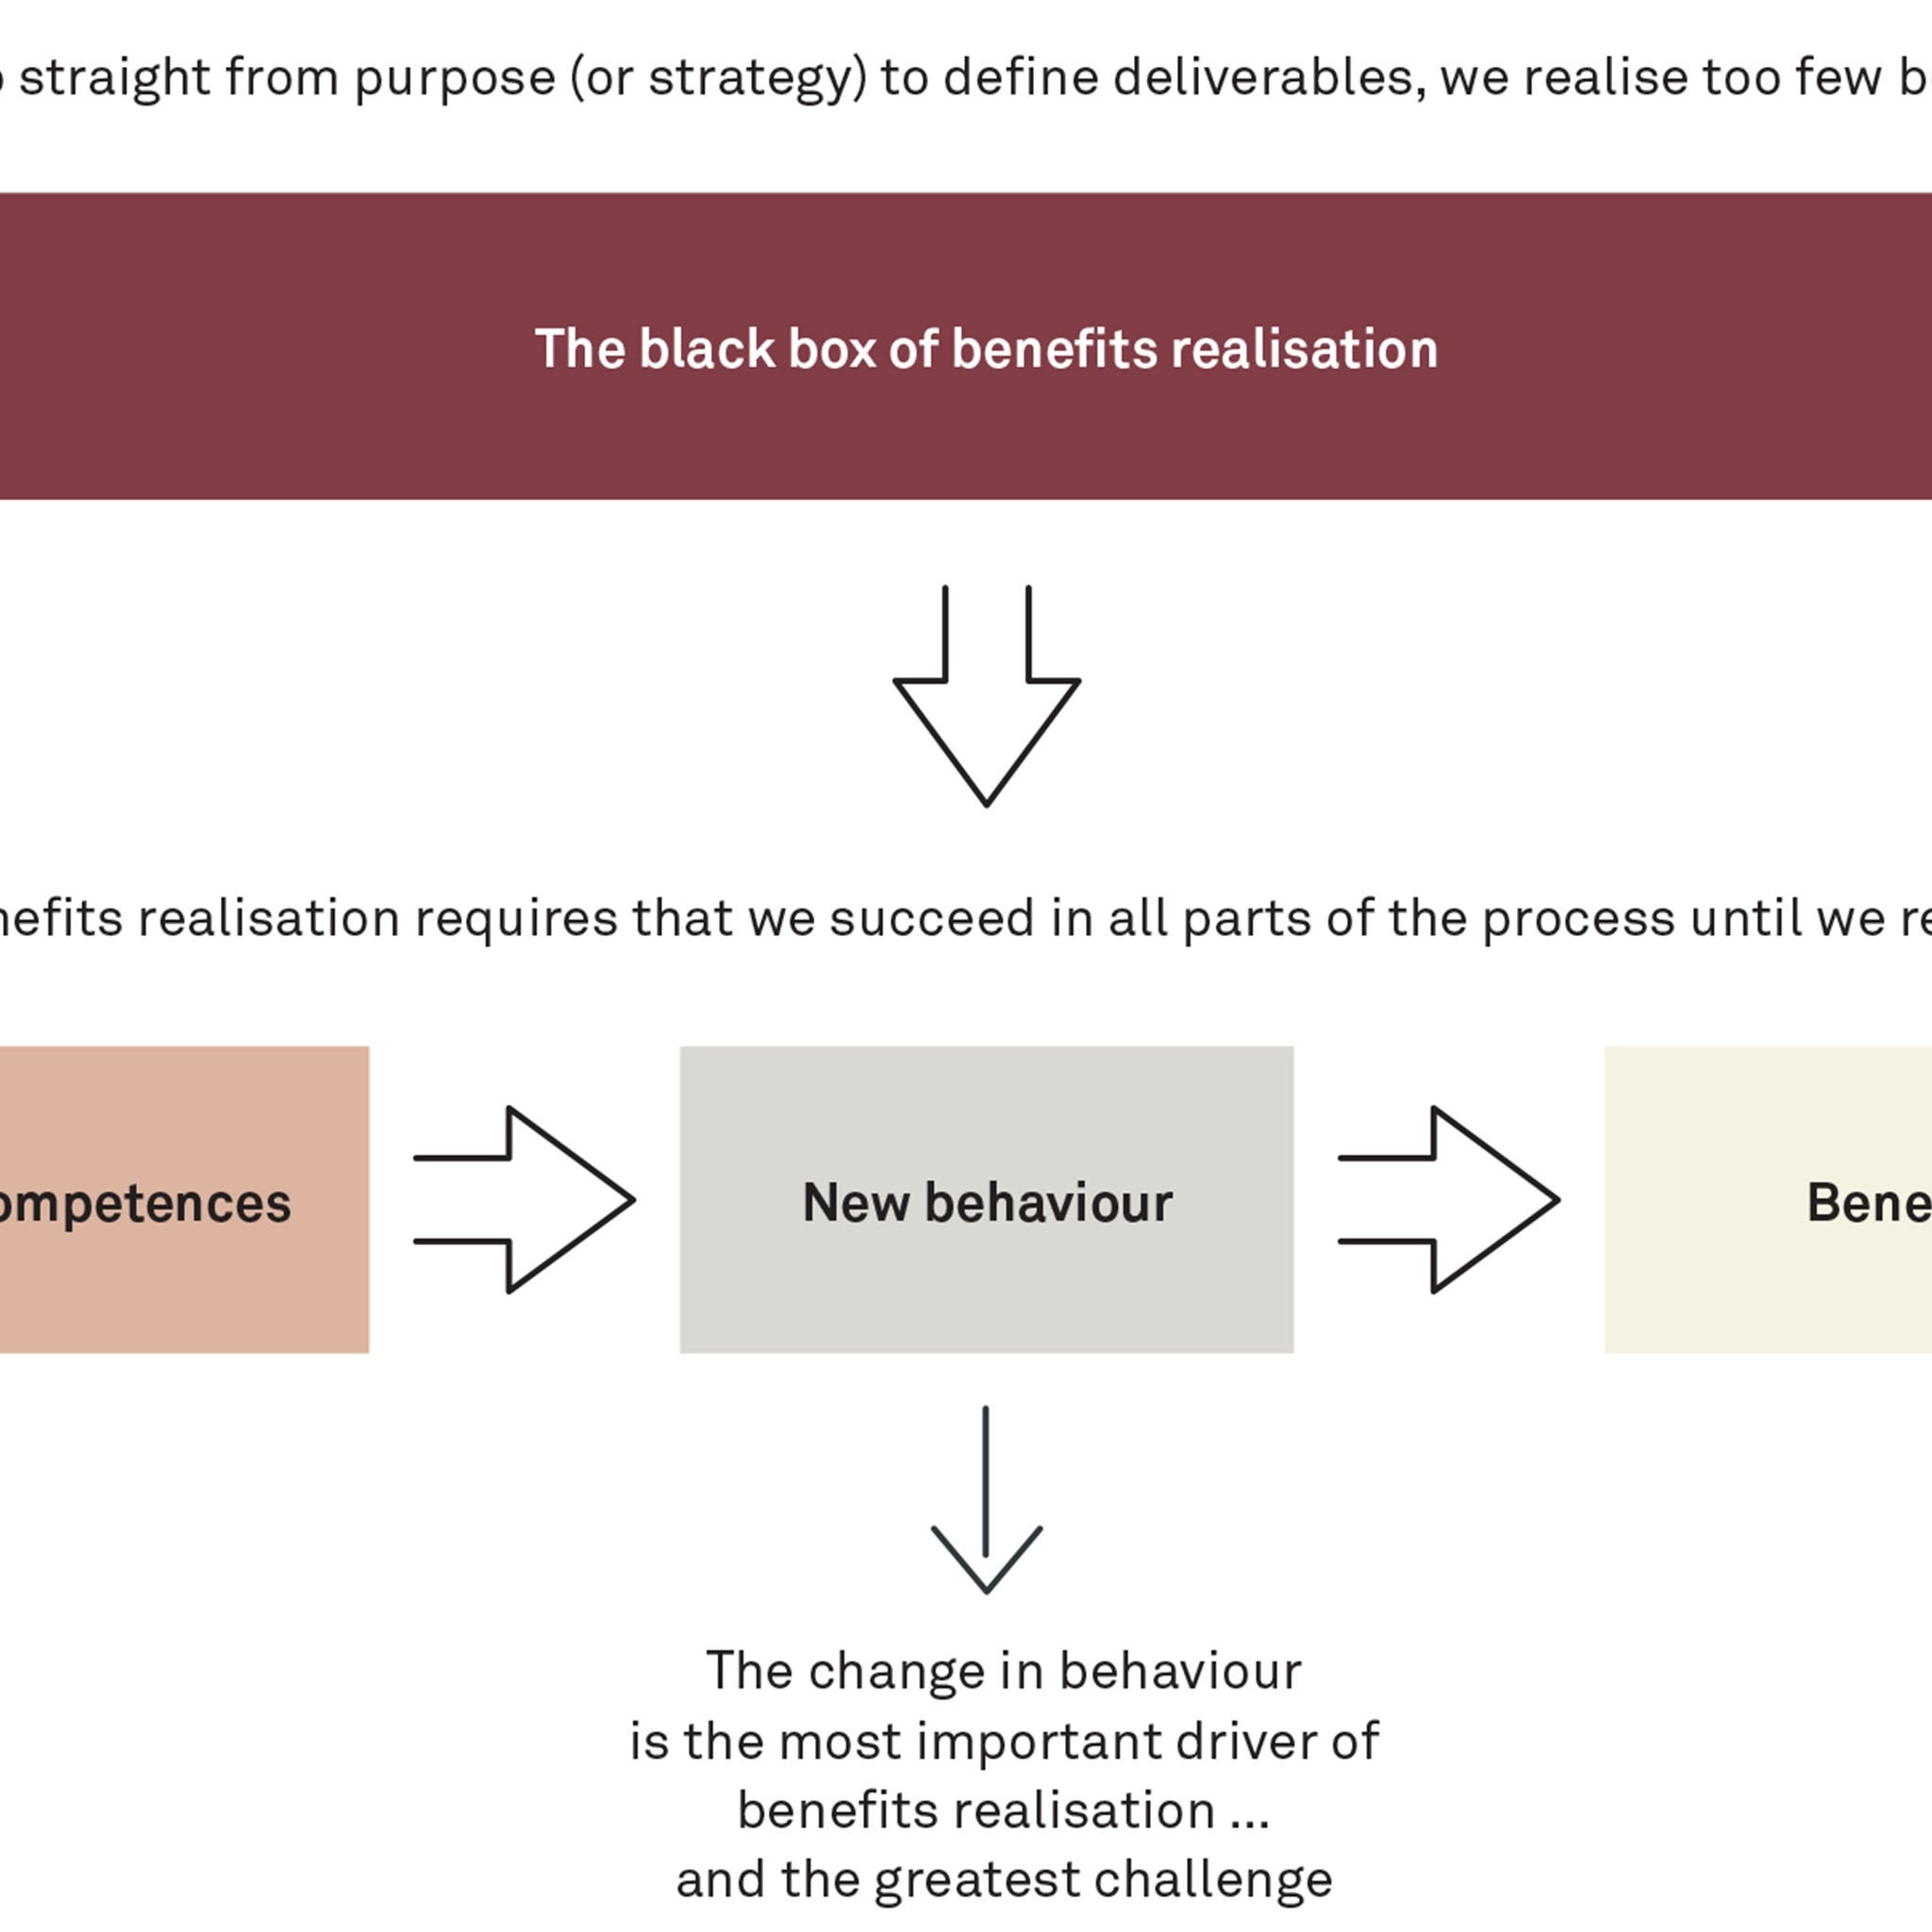 The black box of benefits realisation